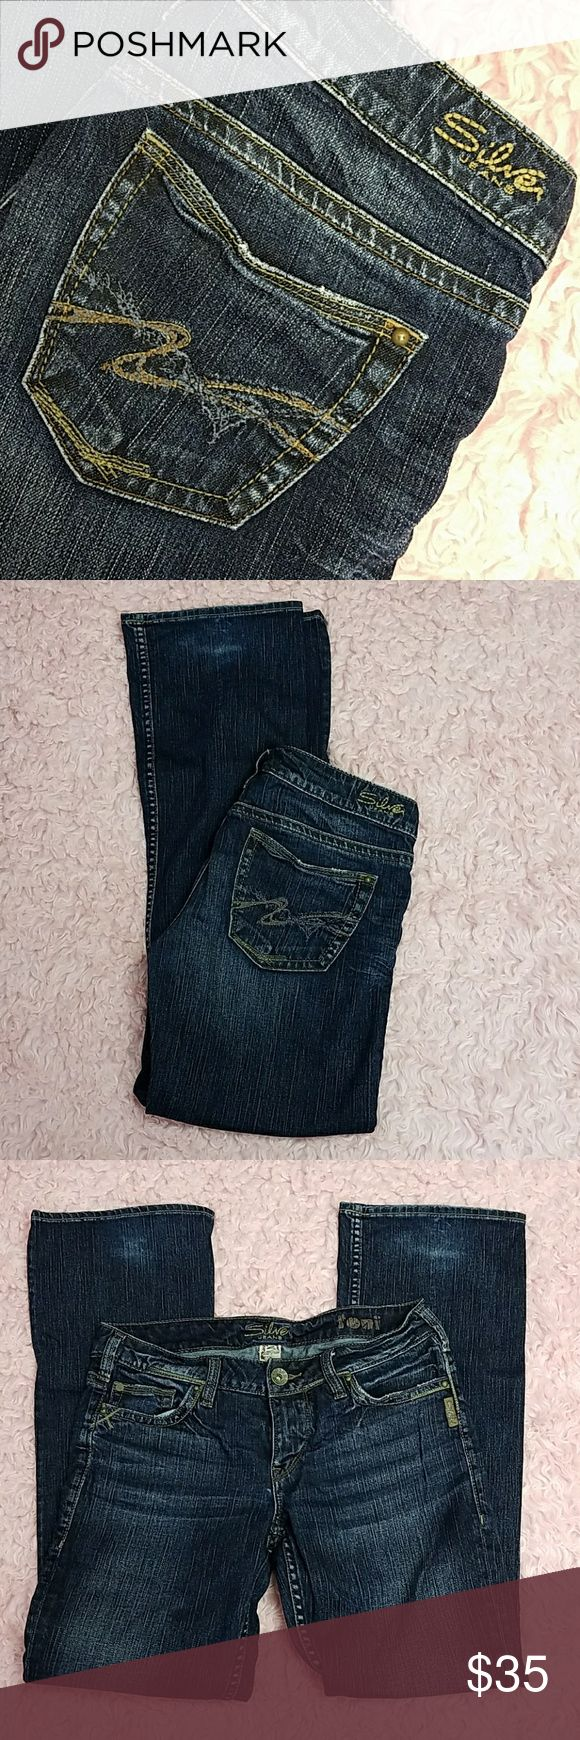 Silver Toni Jeans Nice dark wash. 29x31 Silver Jeans Jeans Boot Cut